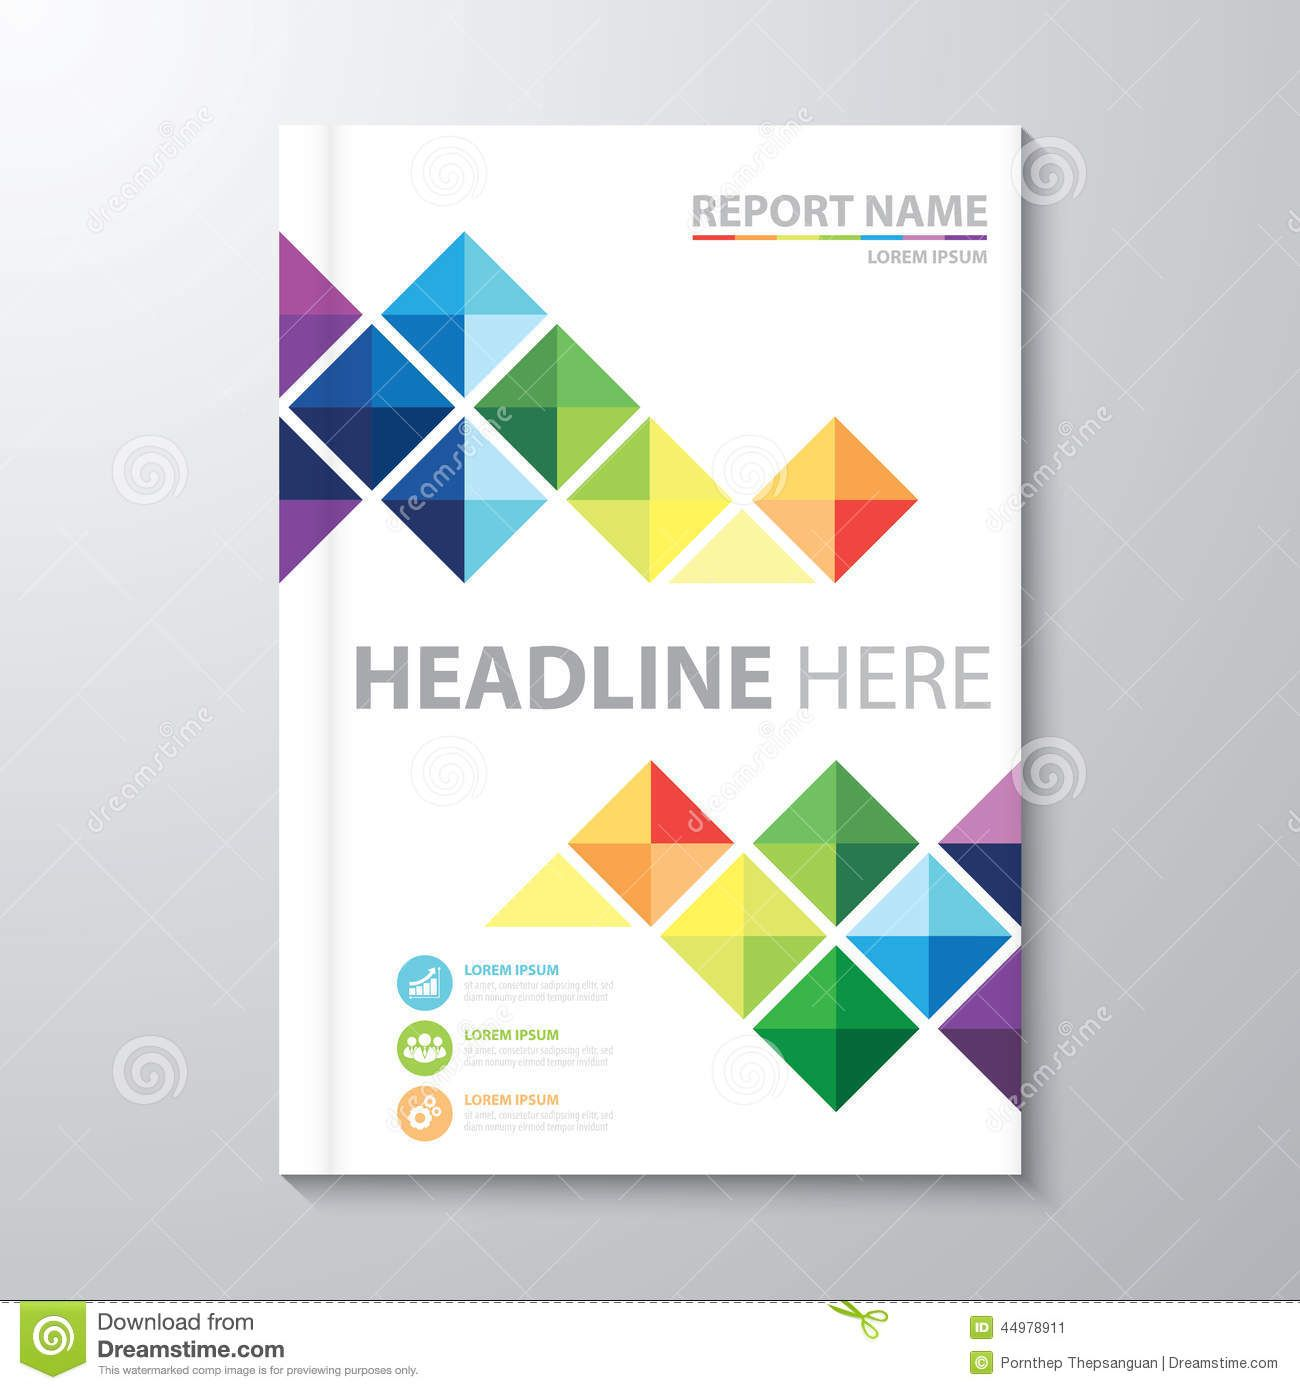 Annual Report Cover Design Template Cover Pinterest